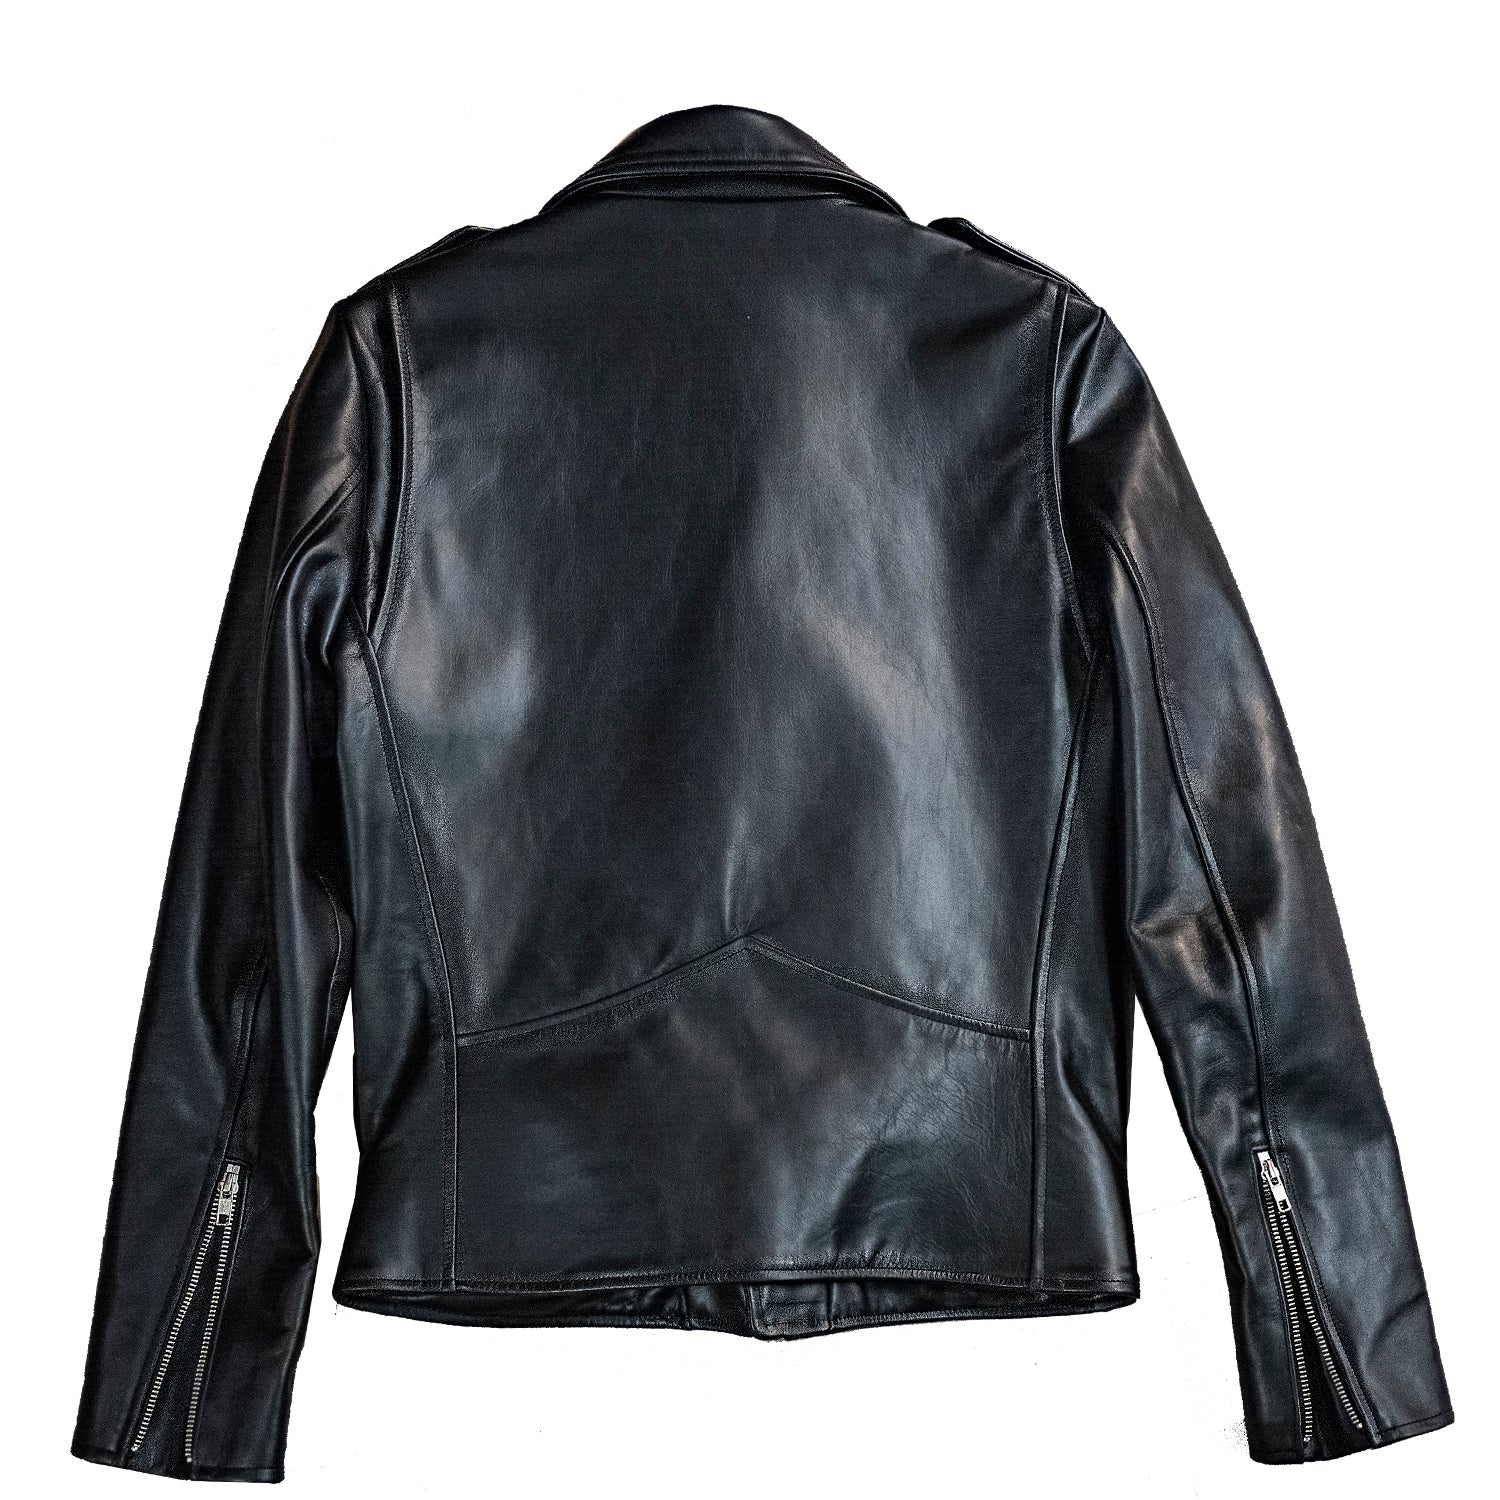 BOWERY JACKET - Black Luster